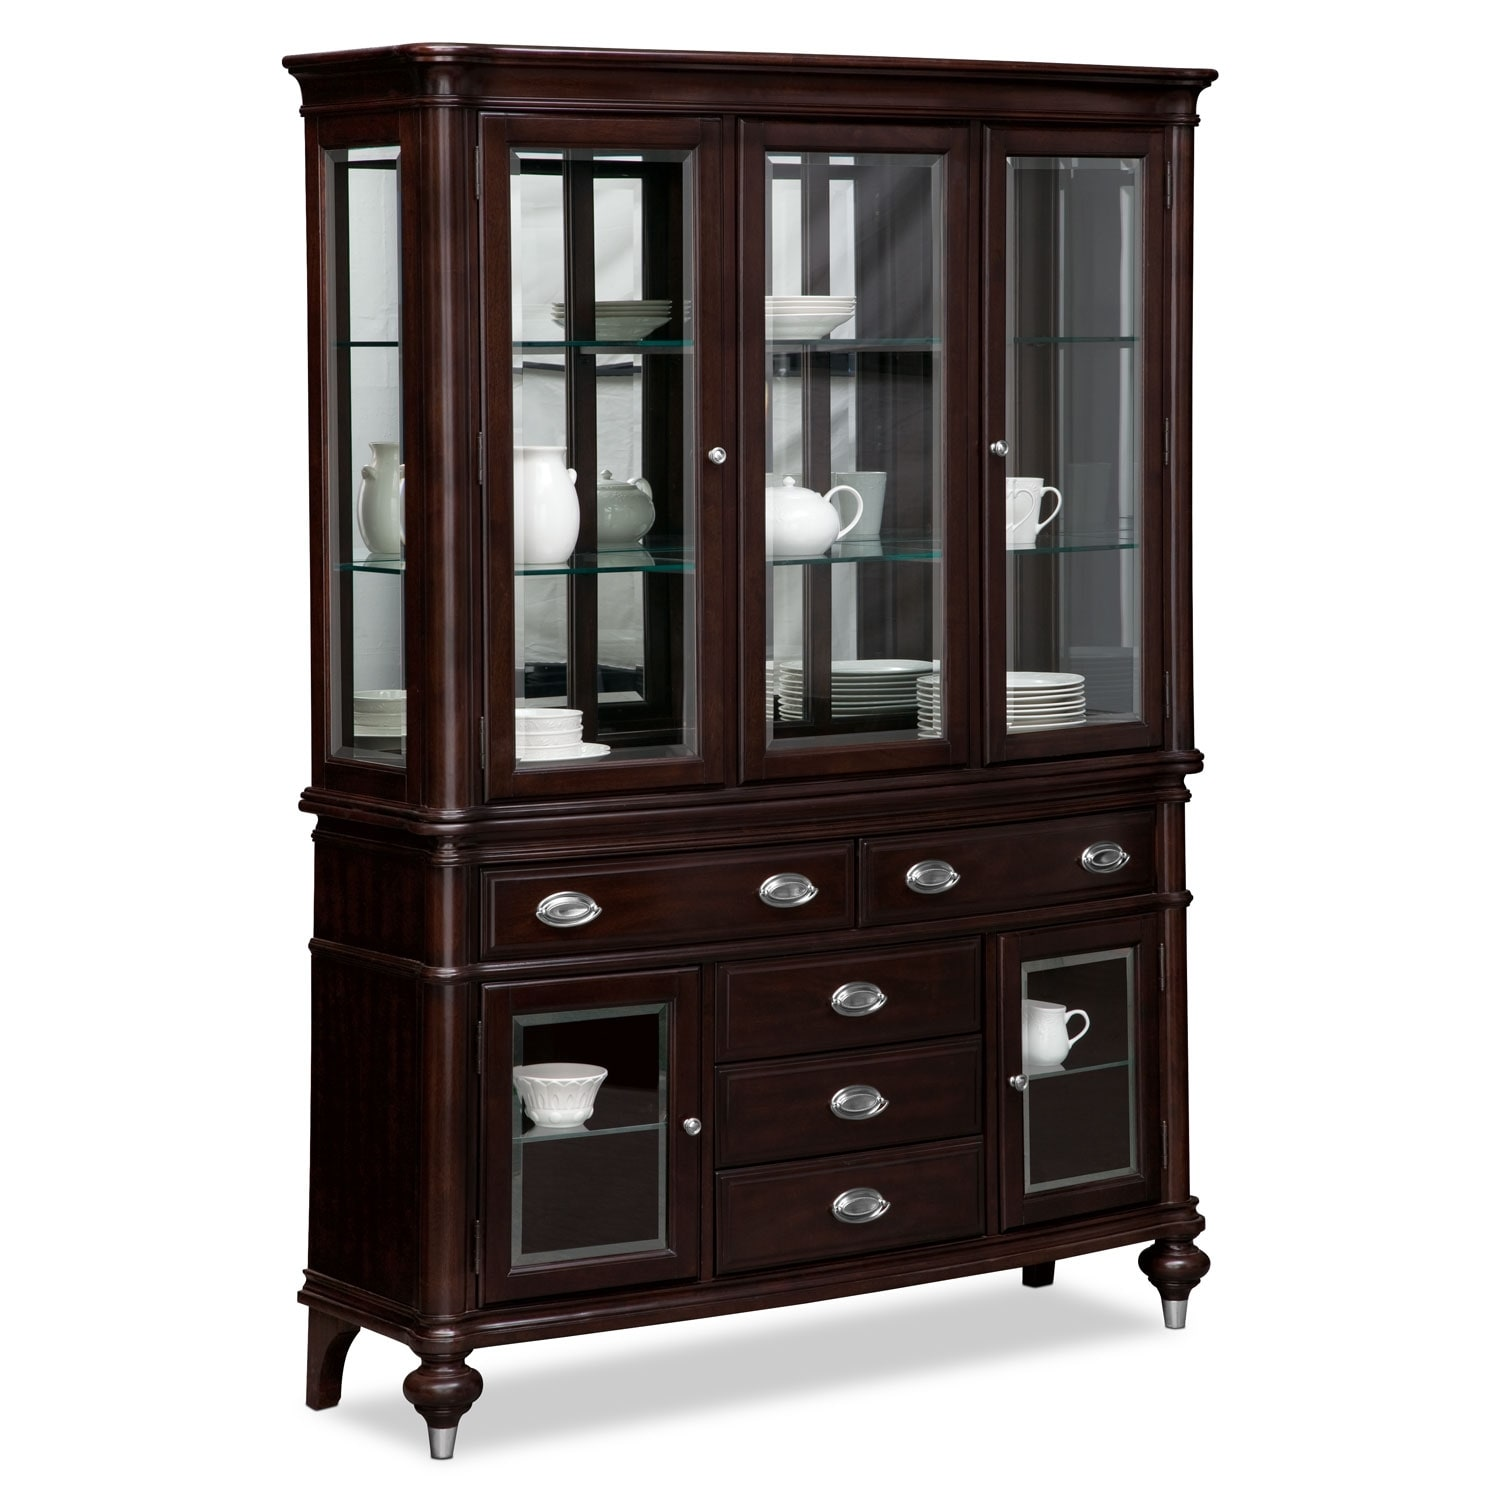 Dining Room Furniture - Esquire Buffet and Hutch - Cherry